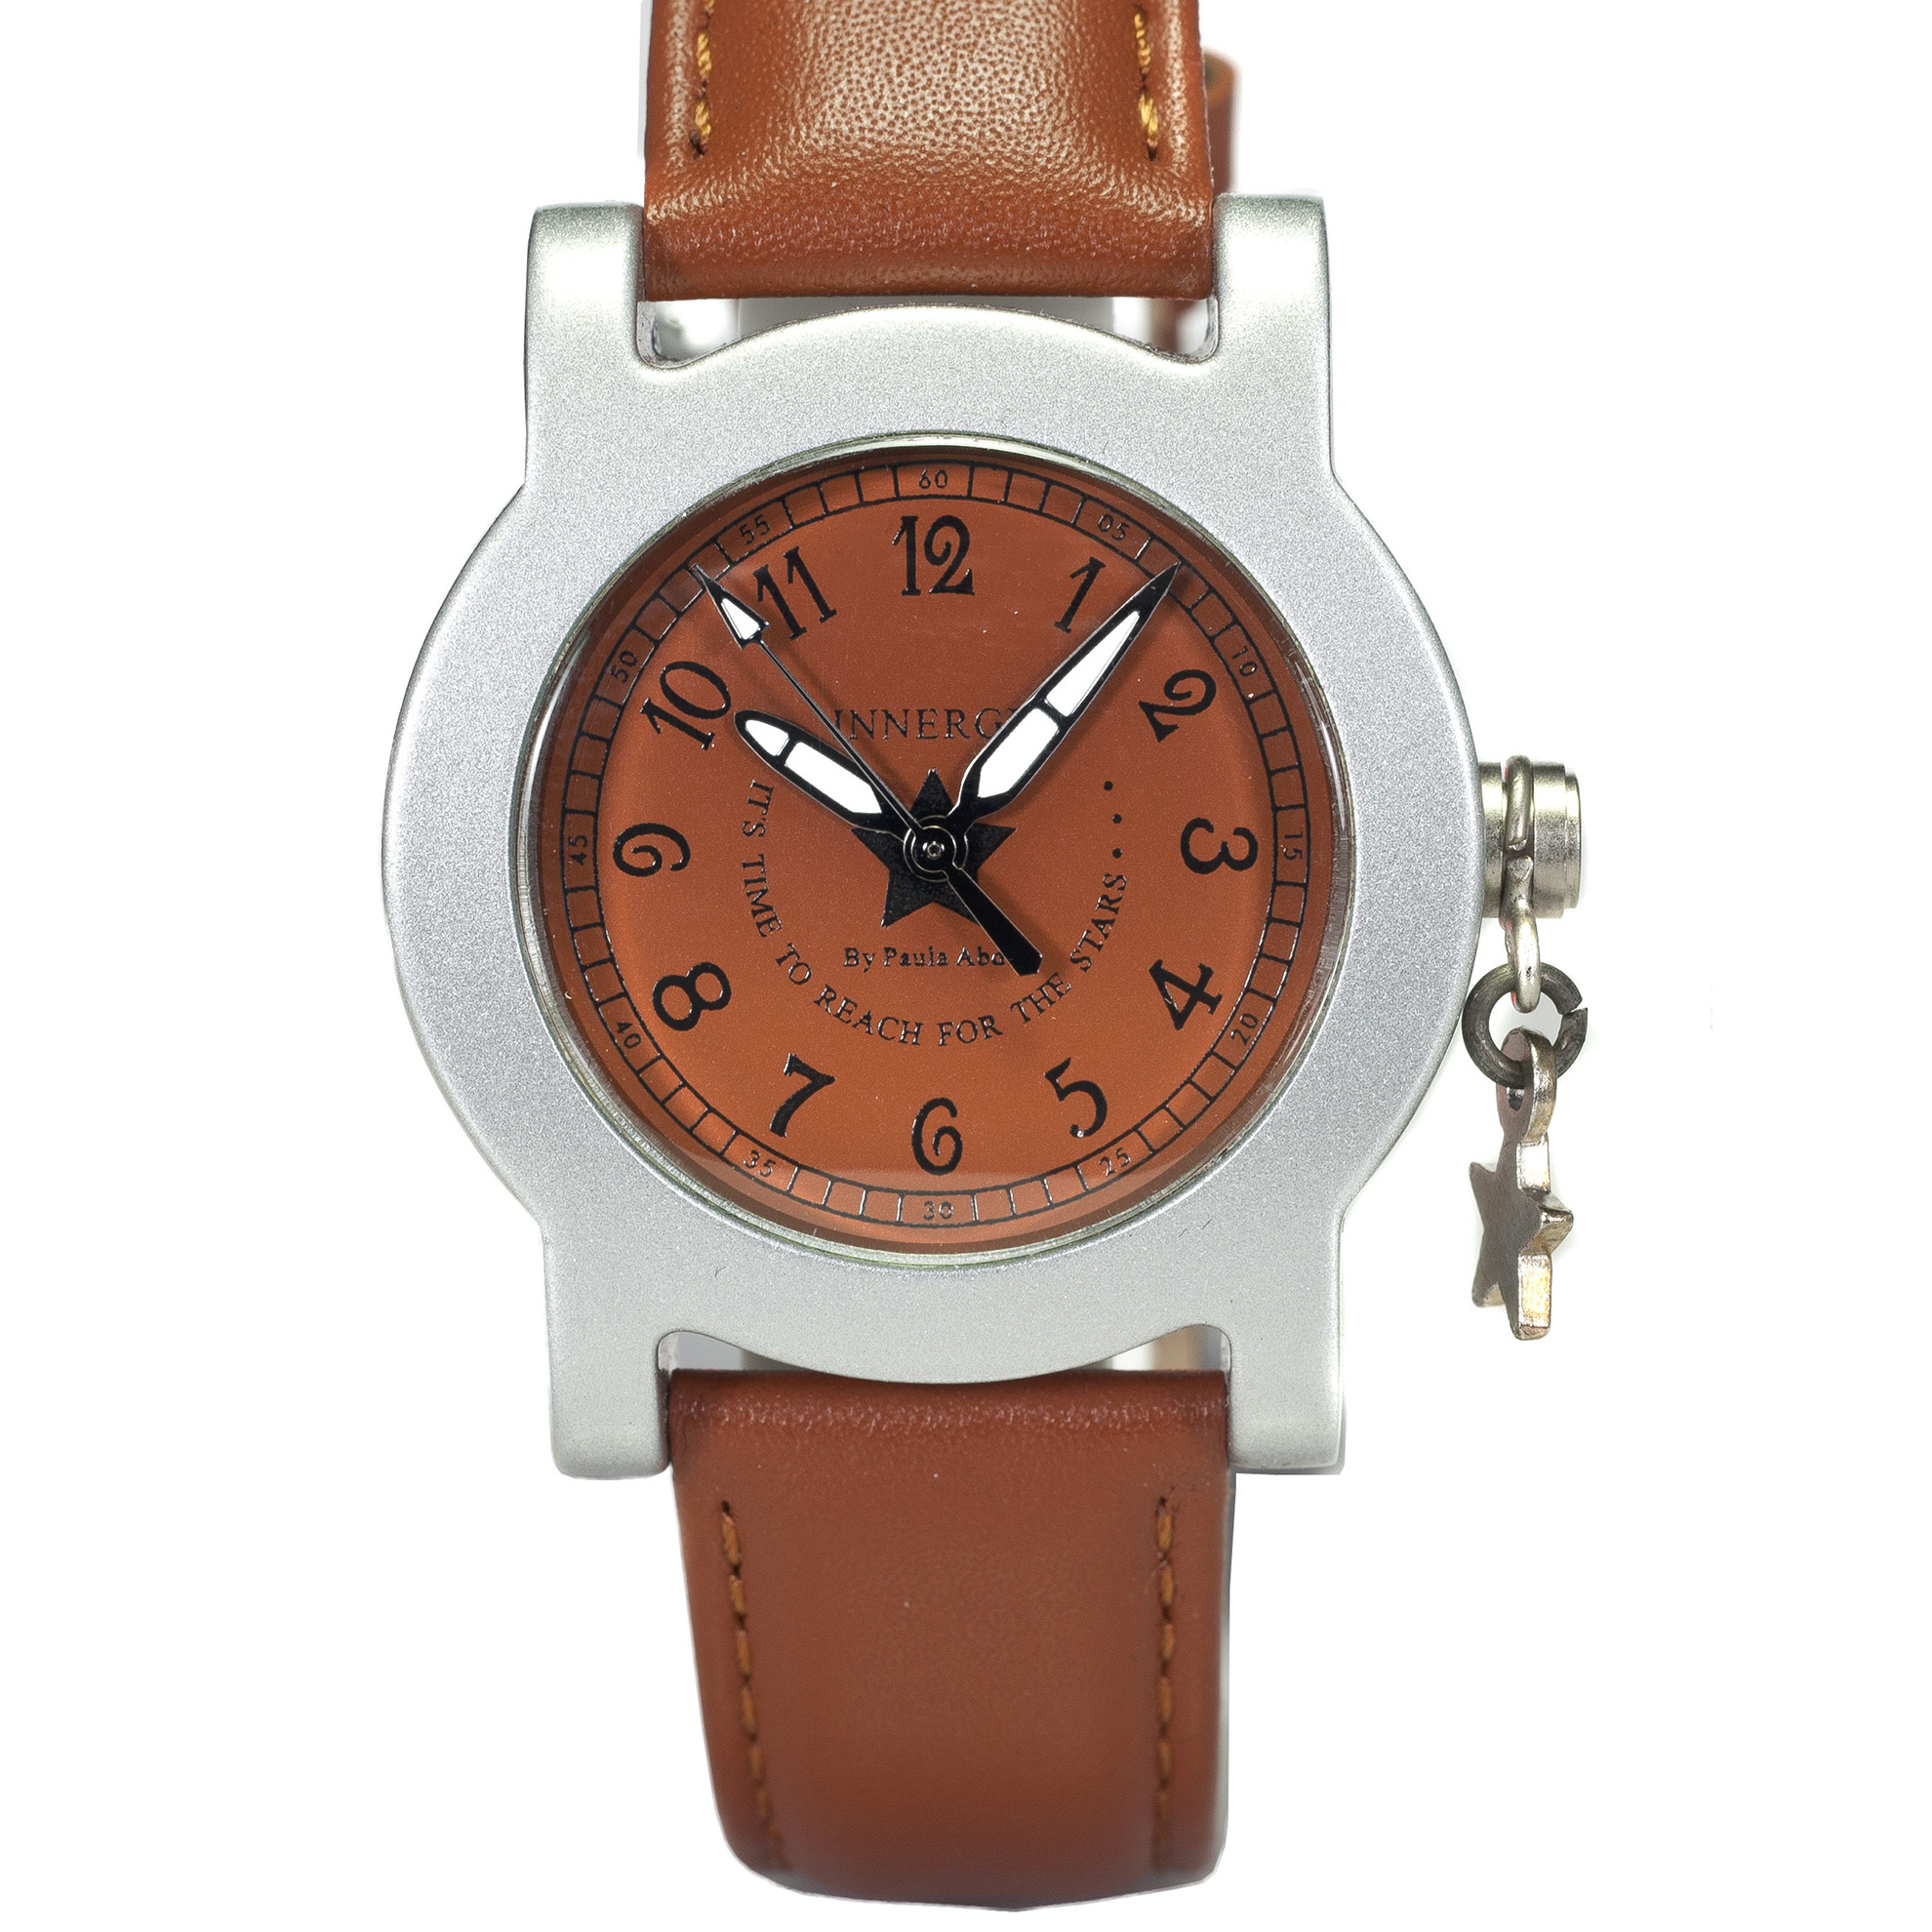 Innergy Swiss Made Timepiece Light Brown Leather Strap